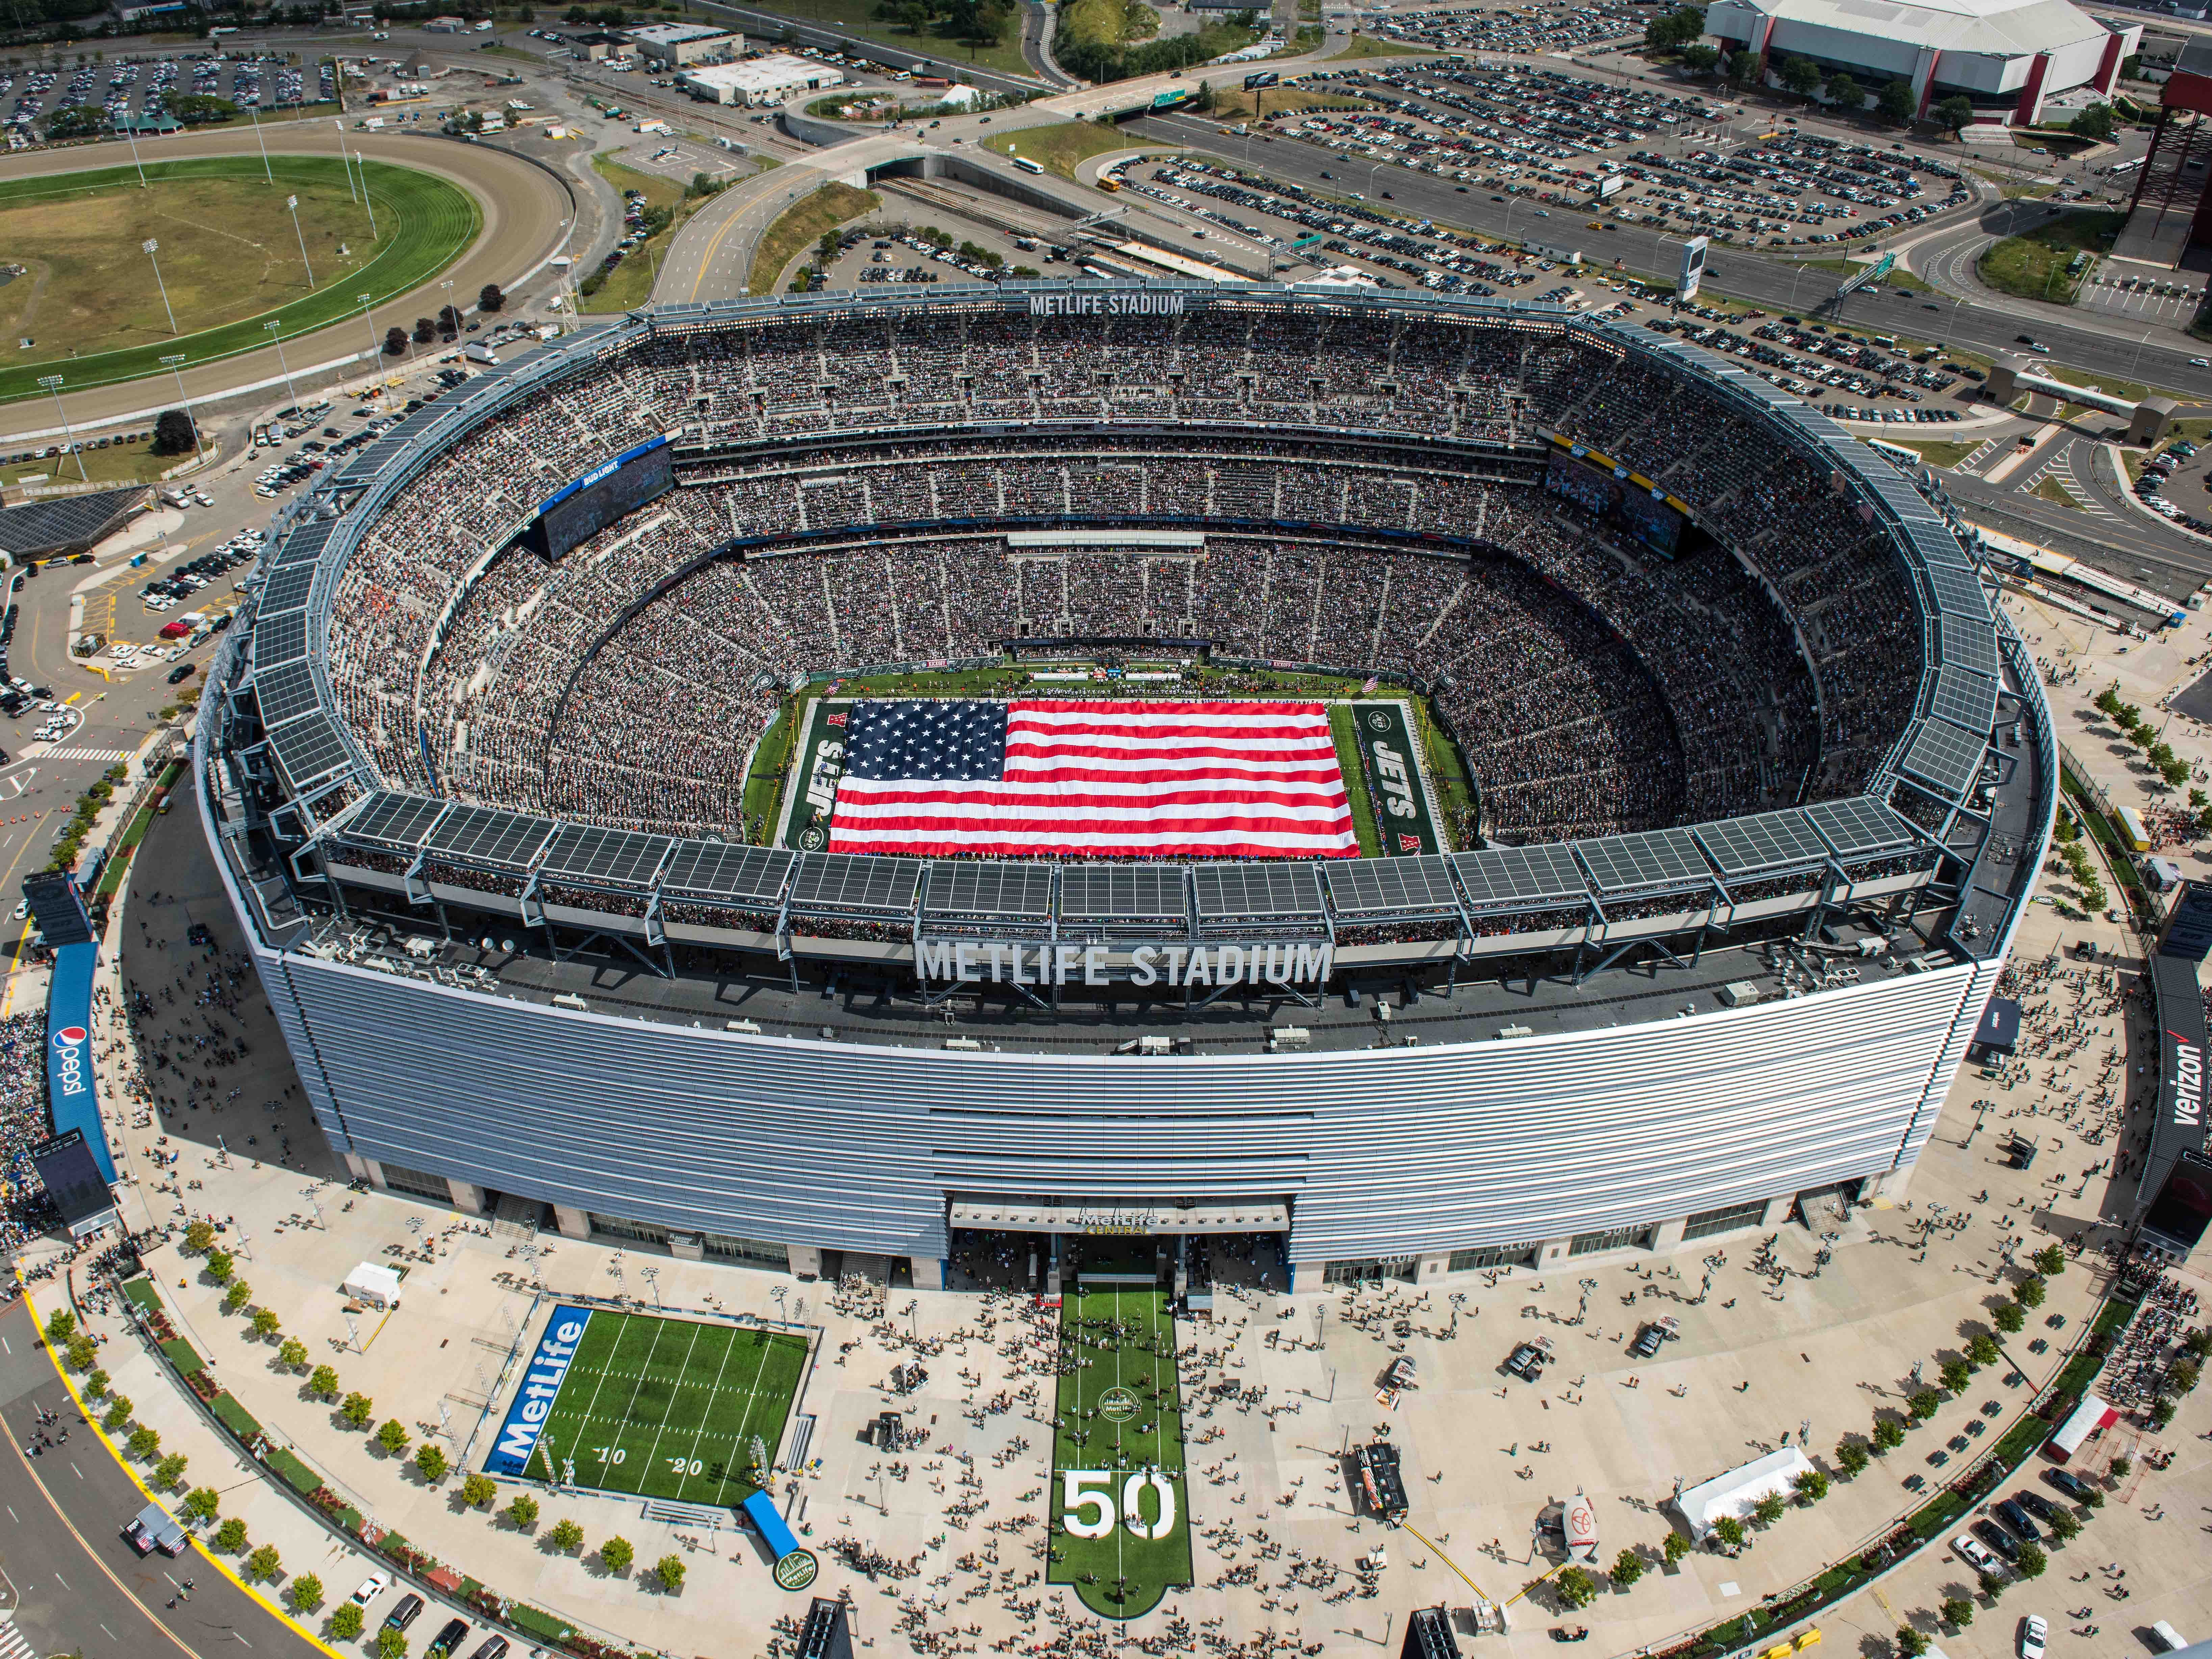 No. 17: MetLife Stadium in East Rutherford, New Jersey.